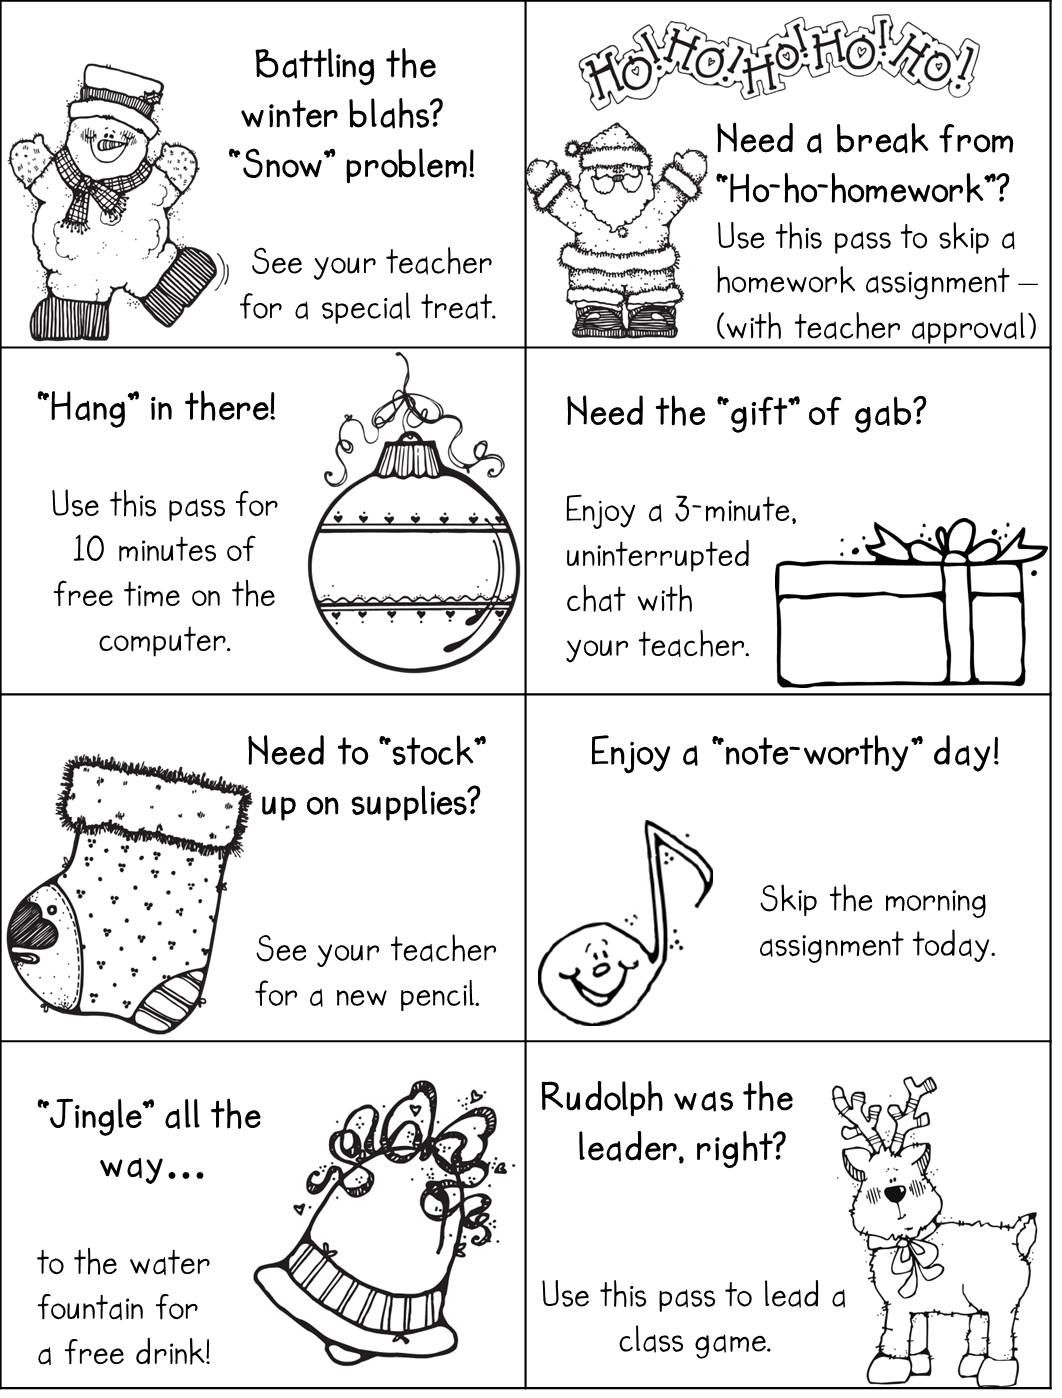 Modified Version Of The Holiday Passes From Mailbox Magazine Using Djinkers Clipart And Font